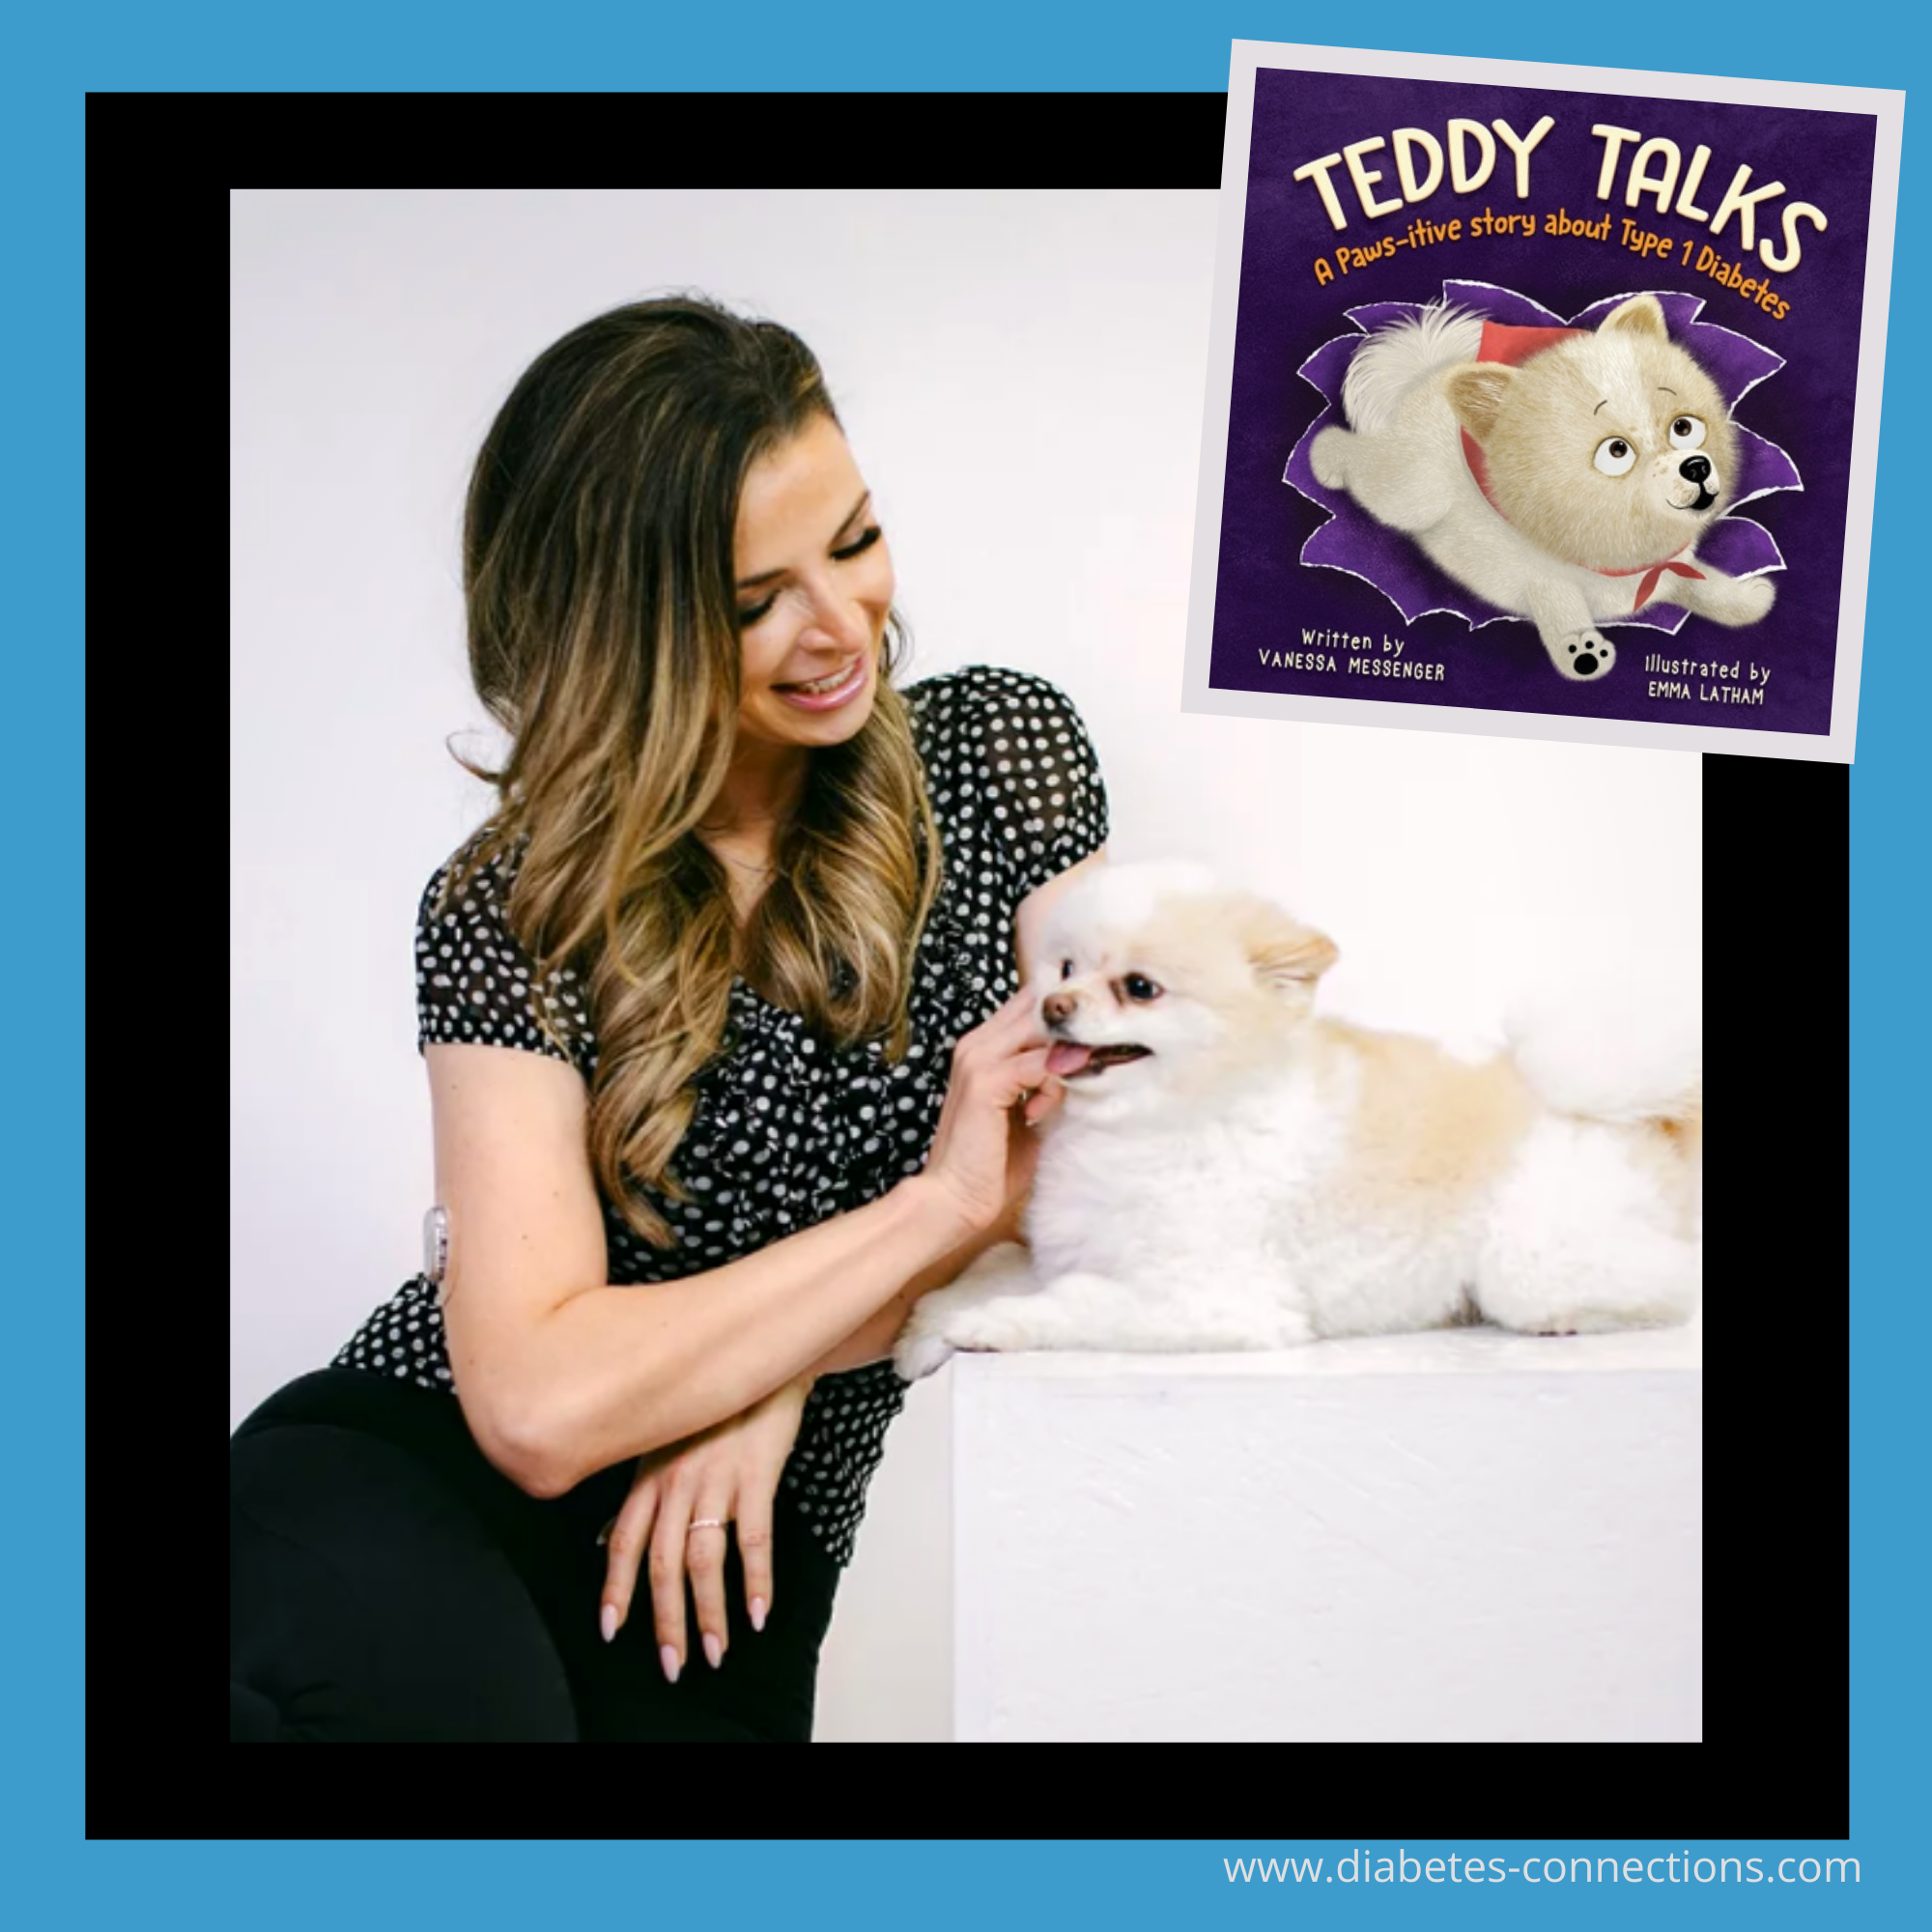 Vanessa Messenger, her dog and the cover of Teddy Talks book